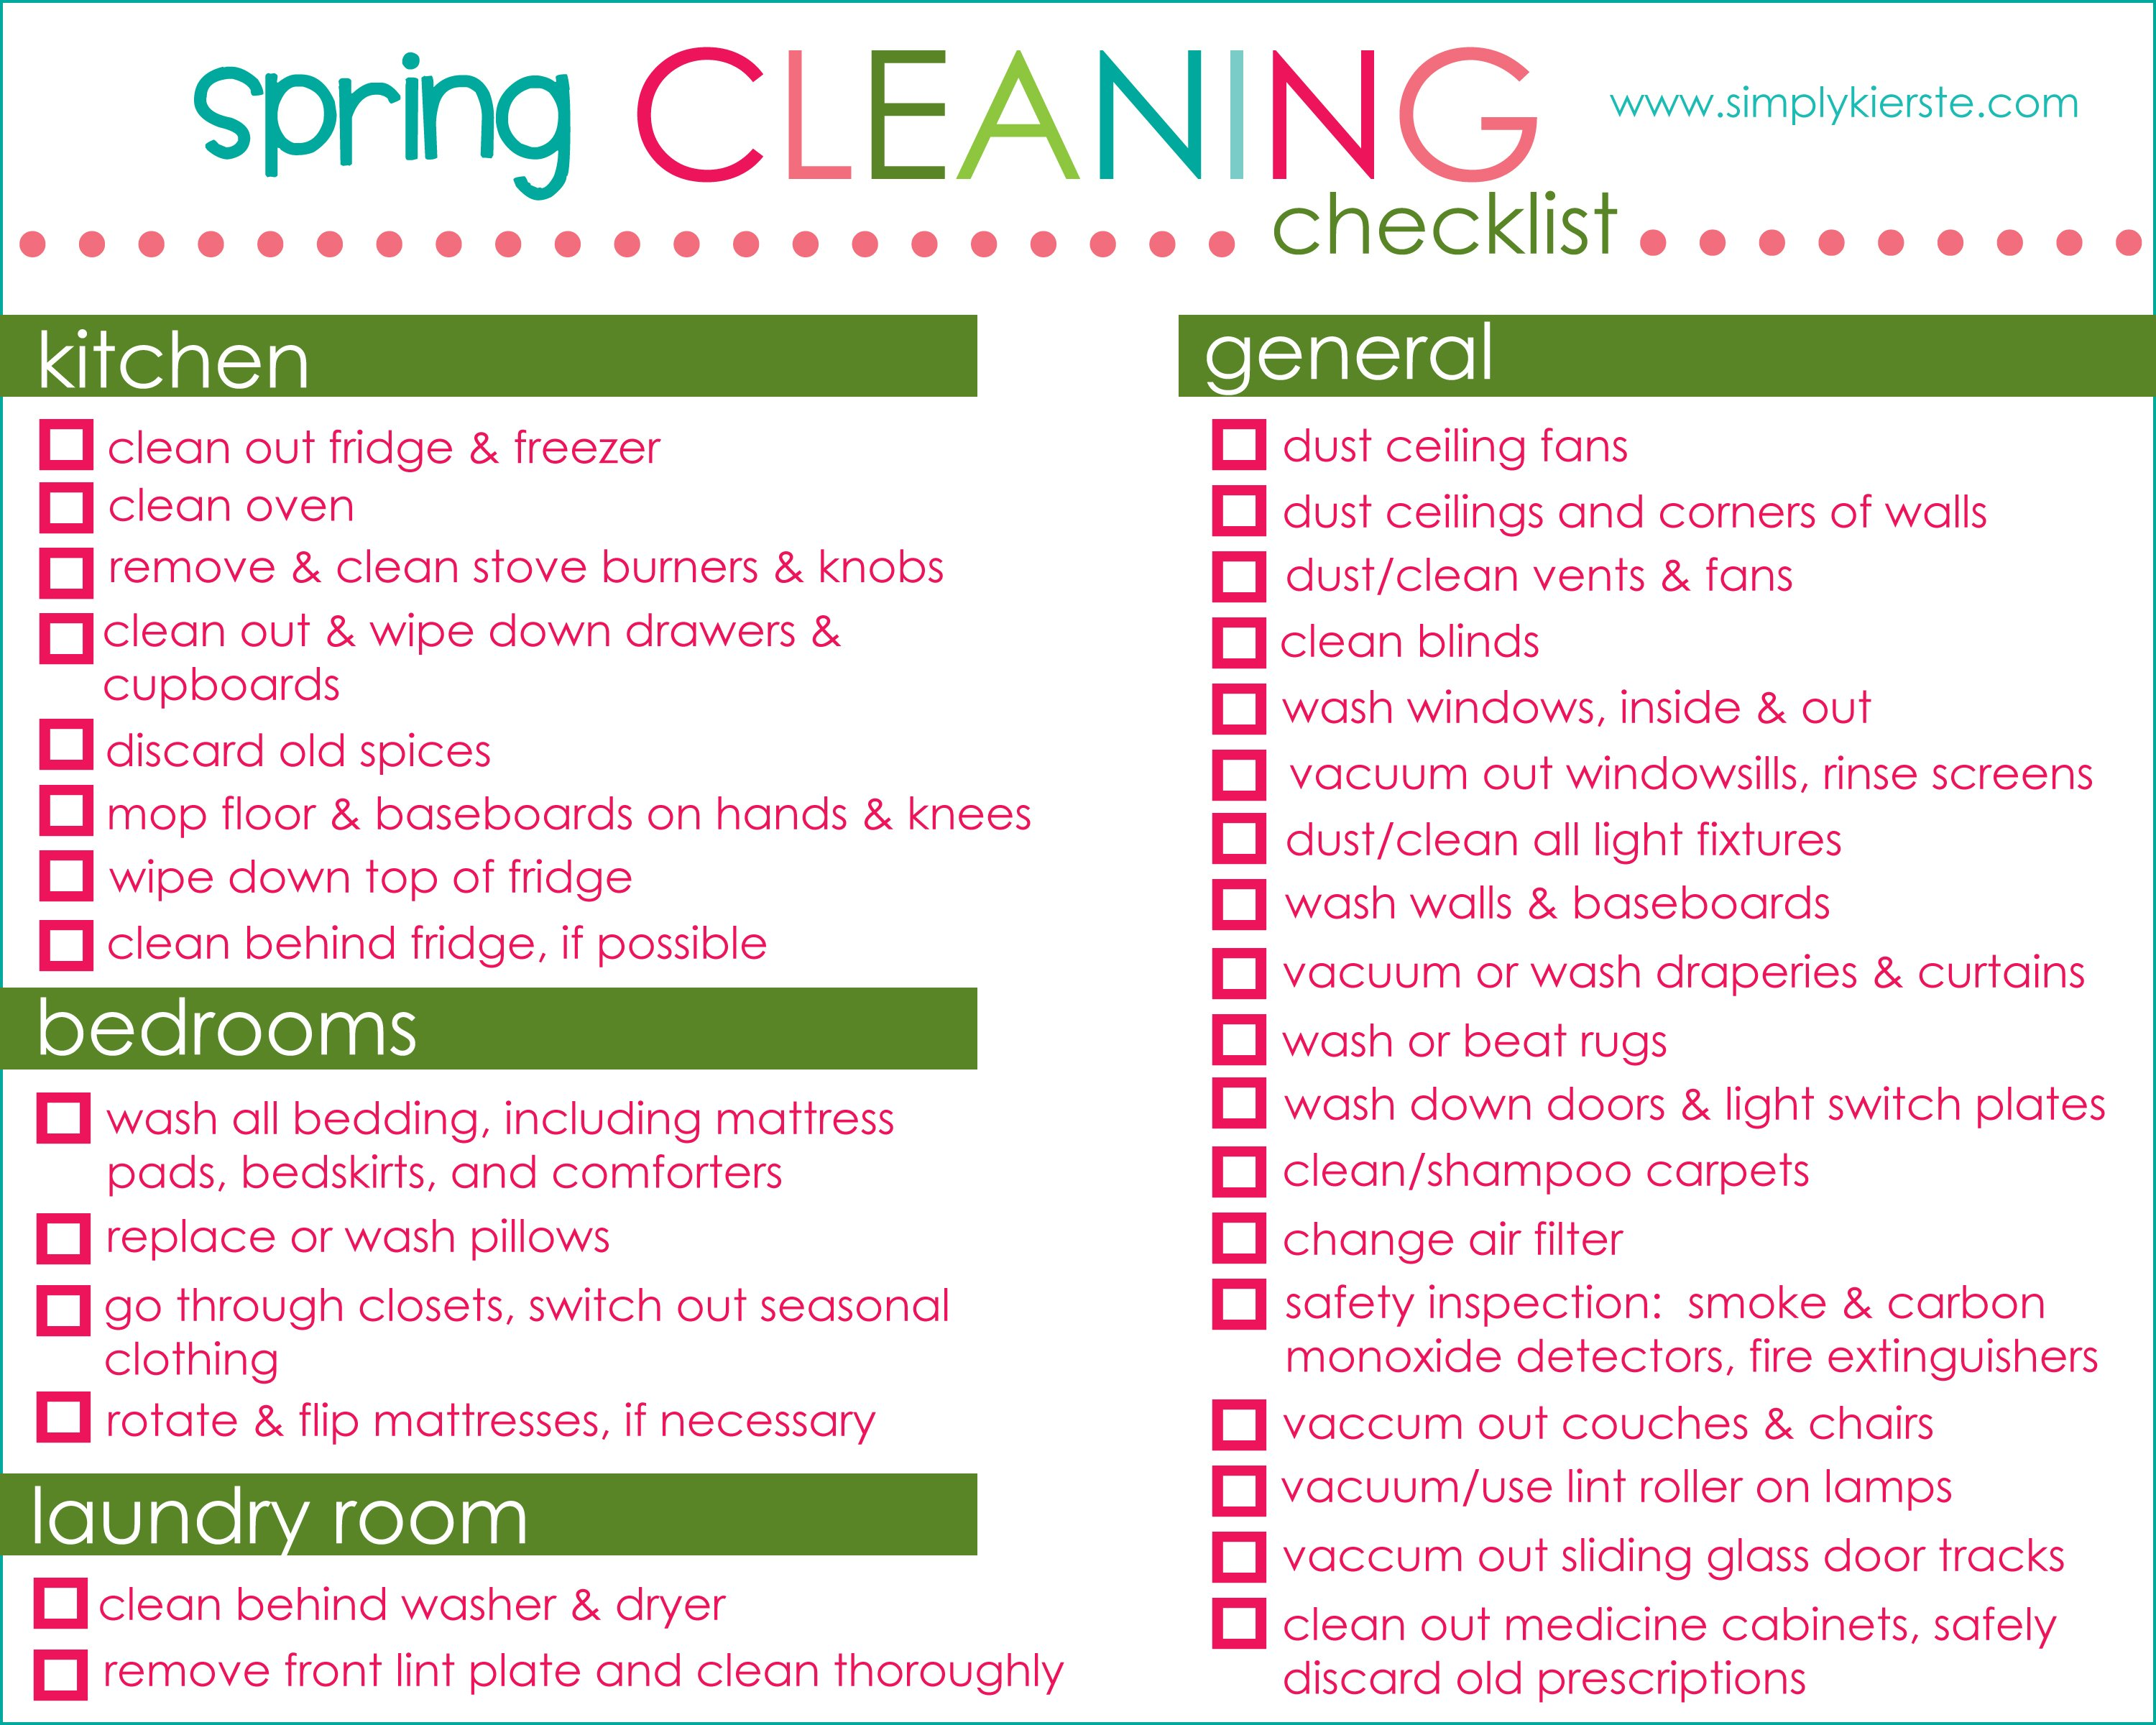 Spring cleaning checklist tips free printable - Reasons always schedule regular home inspection ...